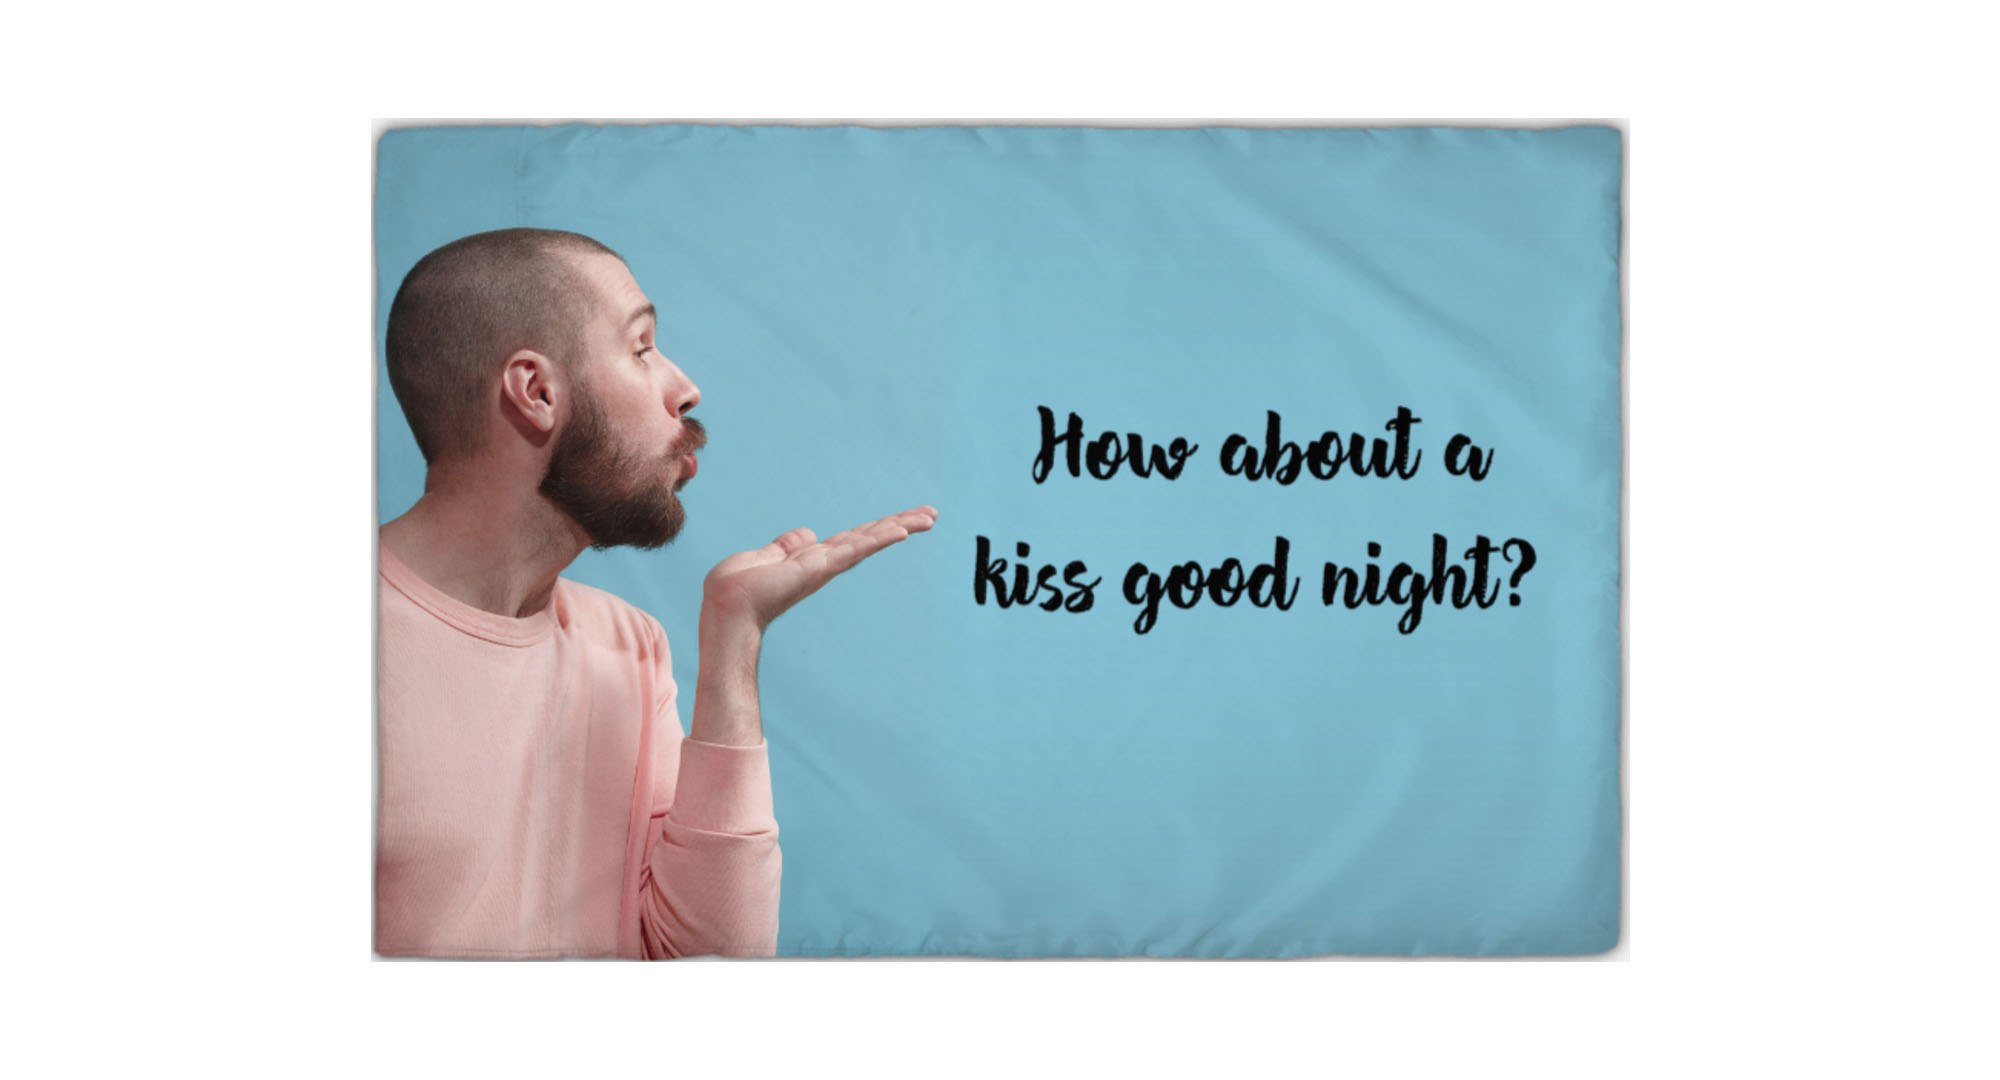 Blue pillowcase with photo of man blowing a kiss